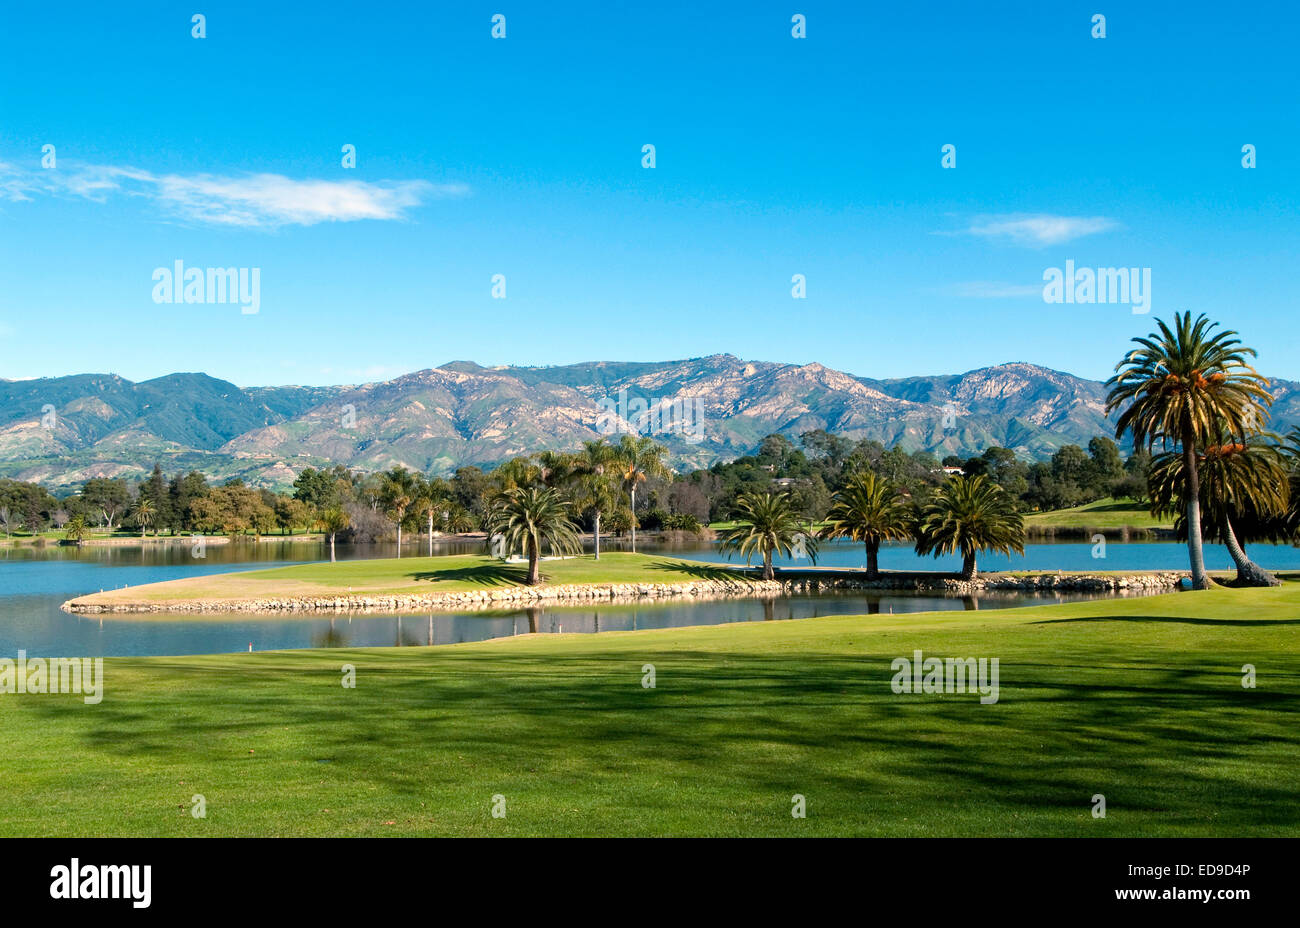 Hope Ranch Golf course, Santa Barbara, California - Stock Image